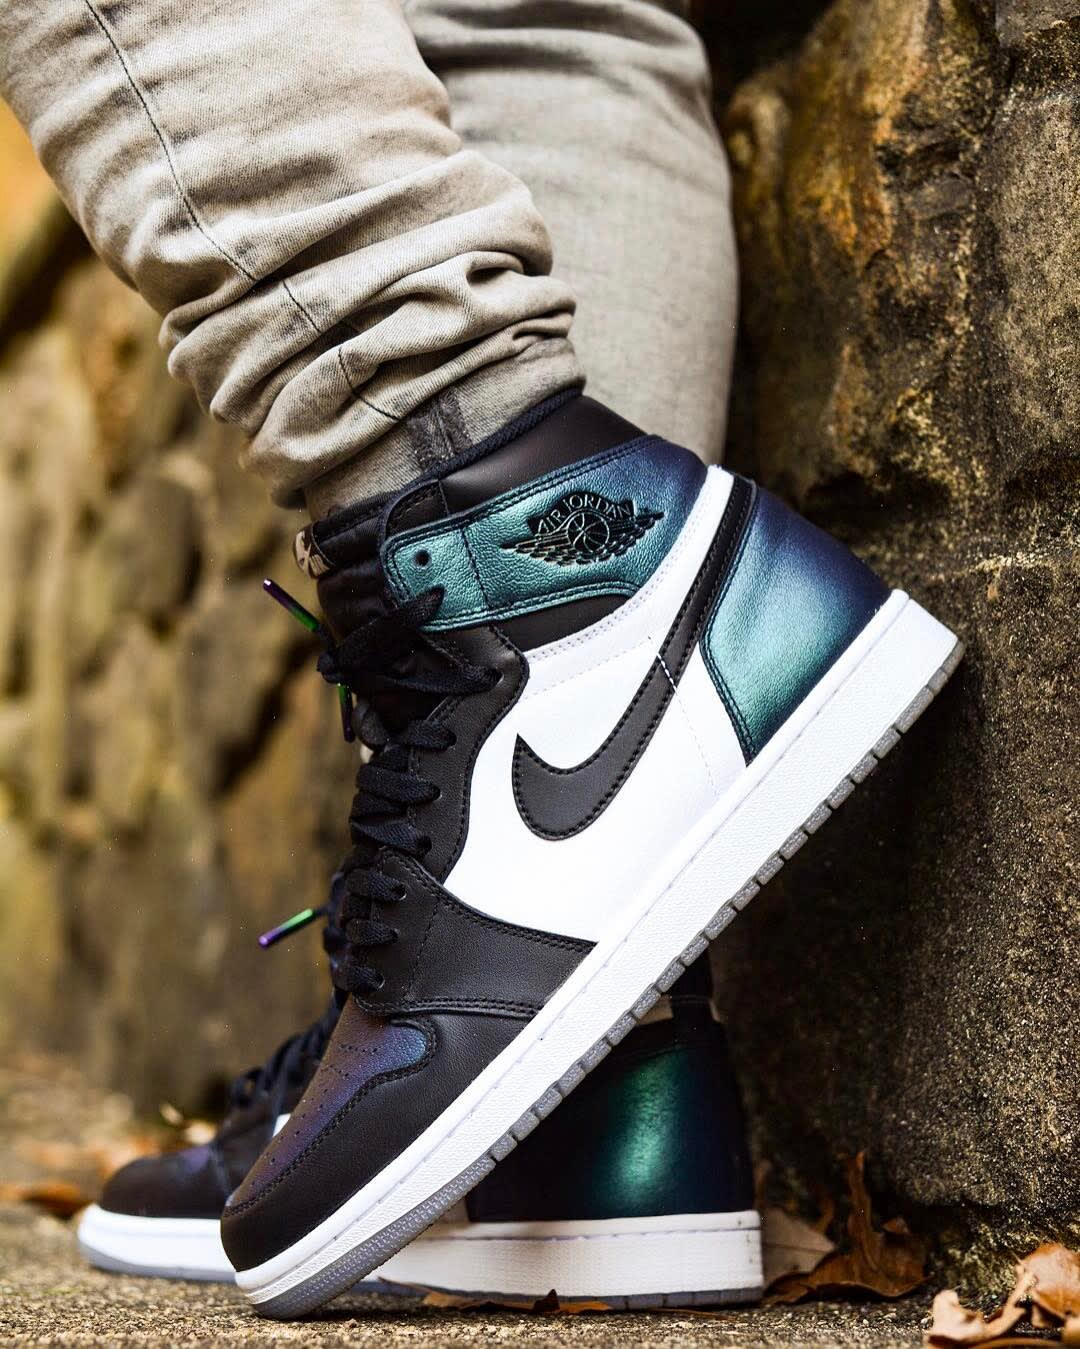 new styles c97fc 38209 Air Jordan 1 All-Star Chameleon 2017 Release | Sole Collector